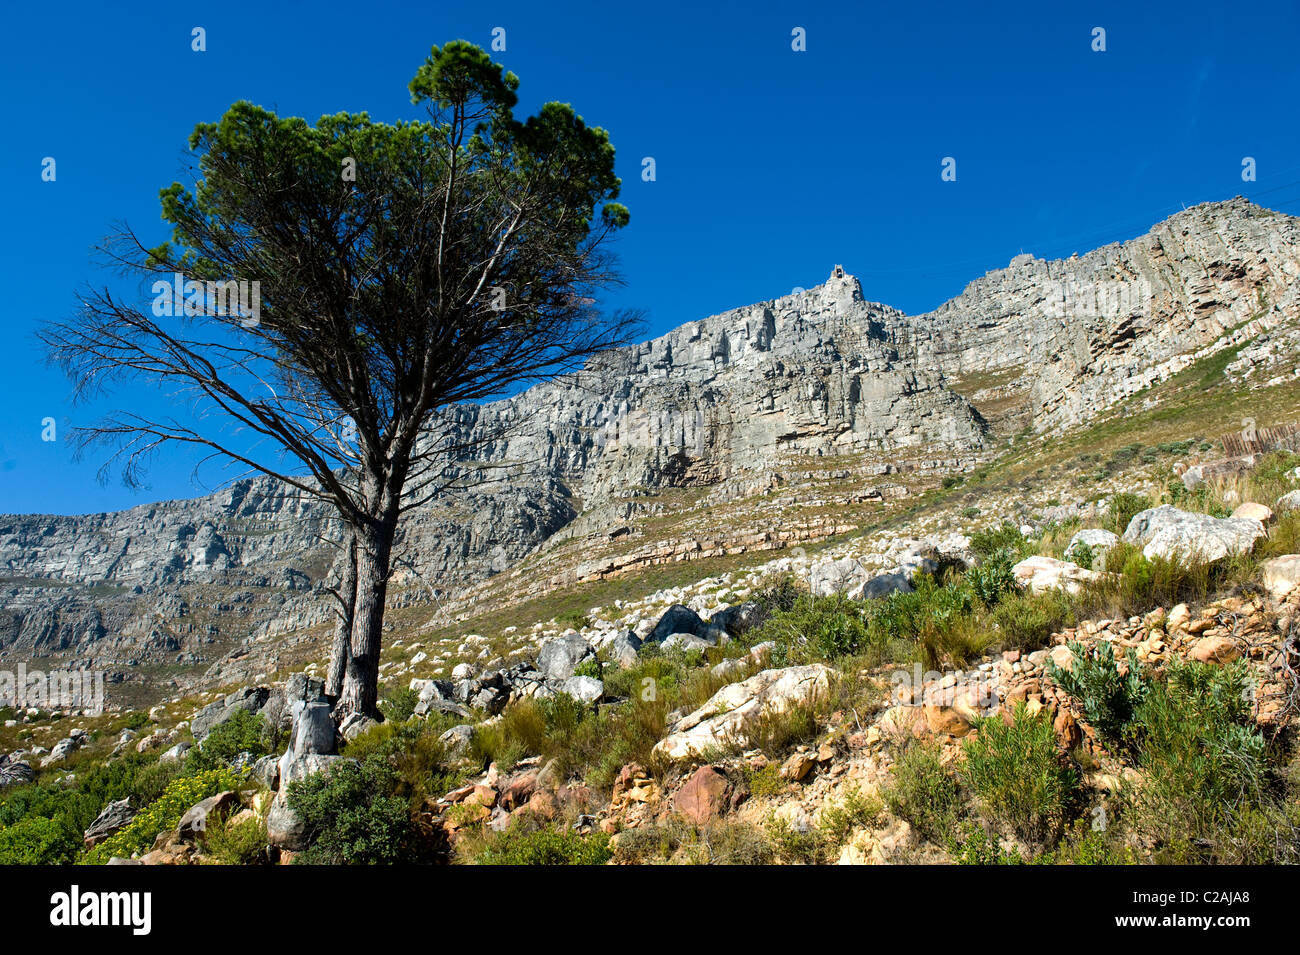 Table Mountain Upper Cable Station view from Tafelberg, Cape Town, South Africa - Stock Image